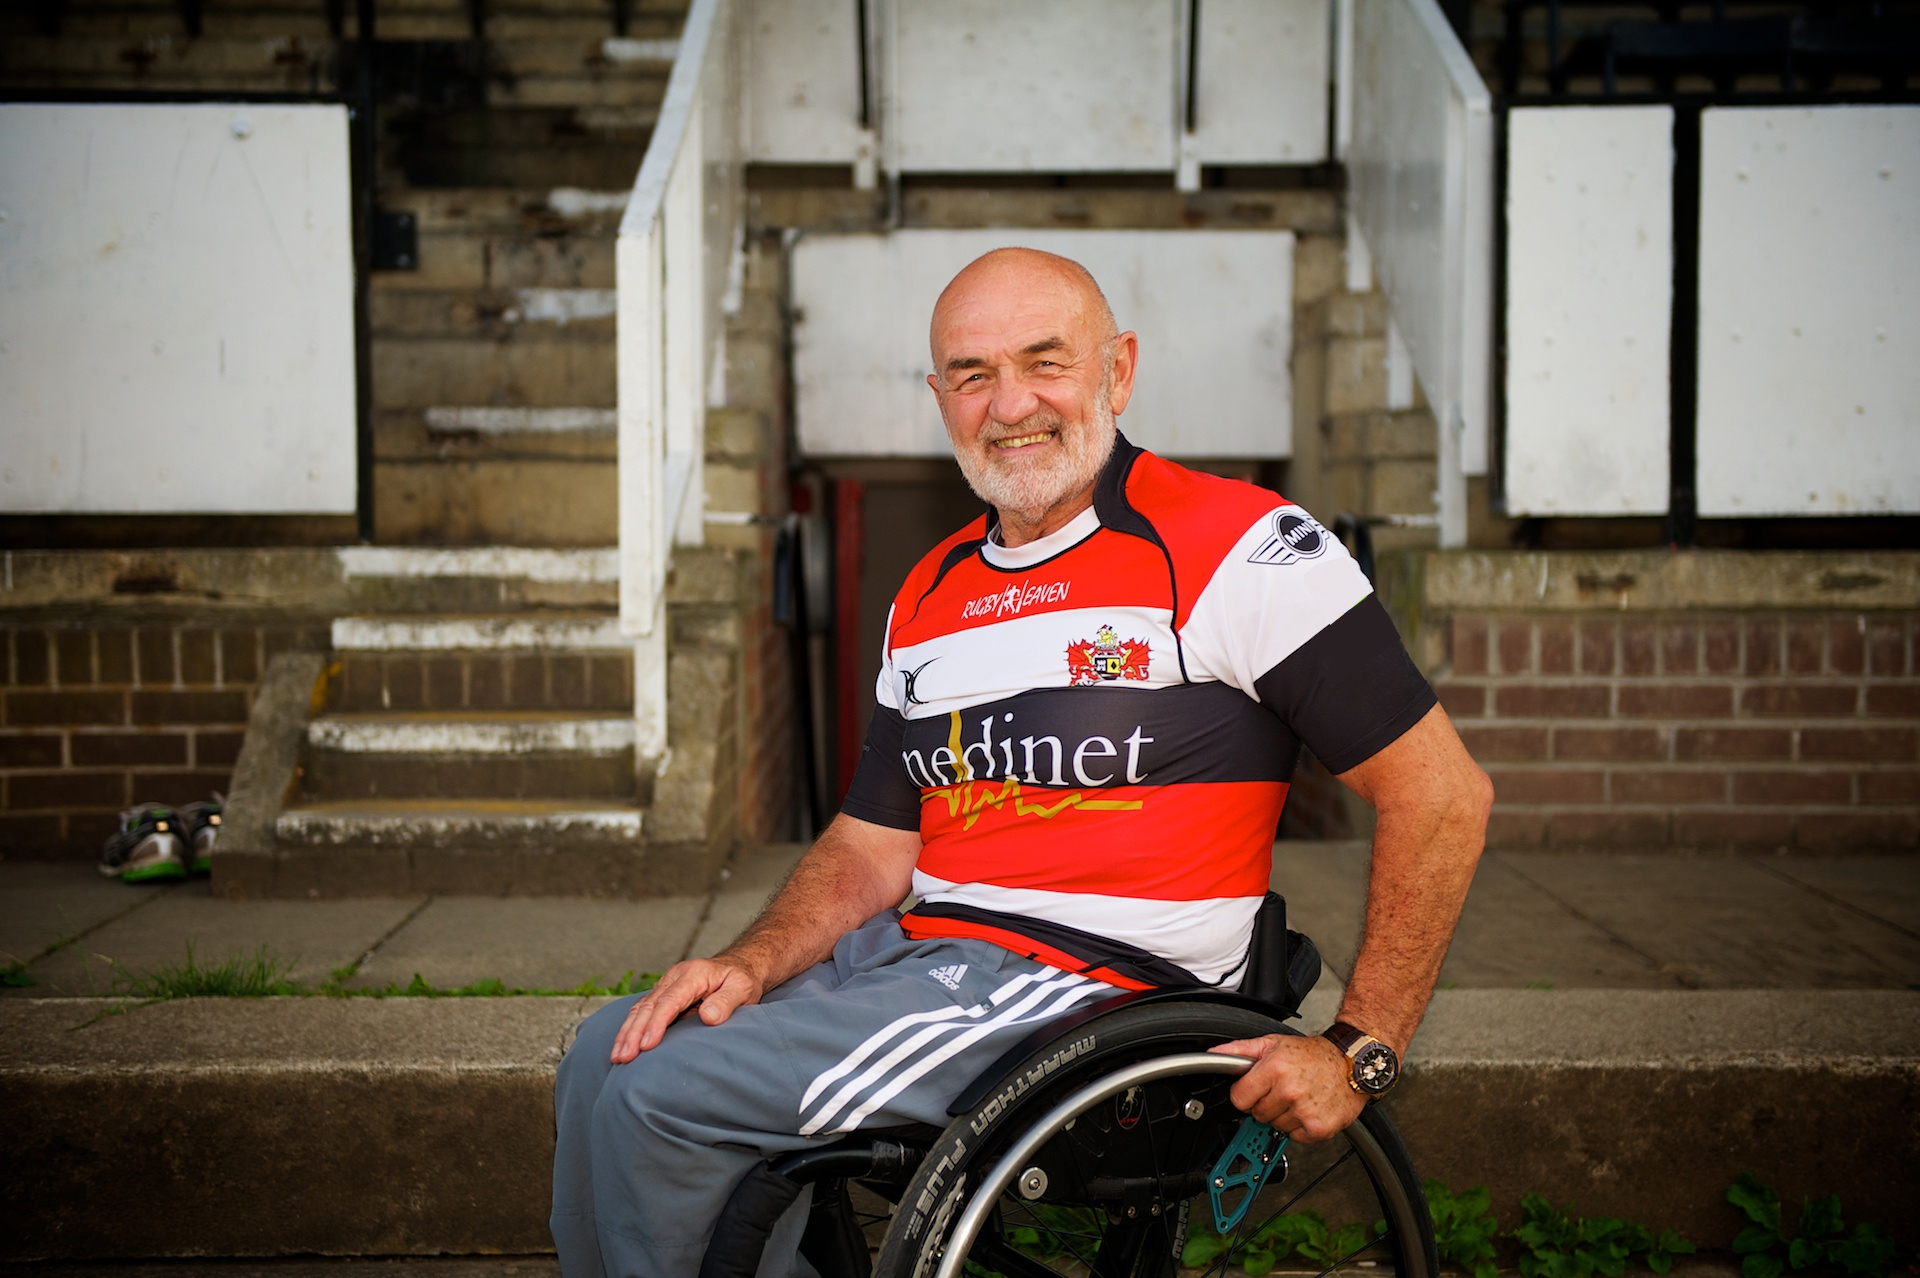 'INSPIRATIONAL': Paralympic gold medalist John Harris met players at Pontypool RFC